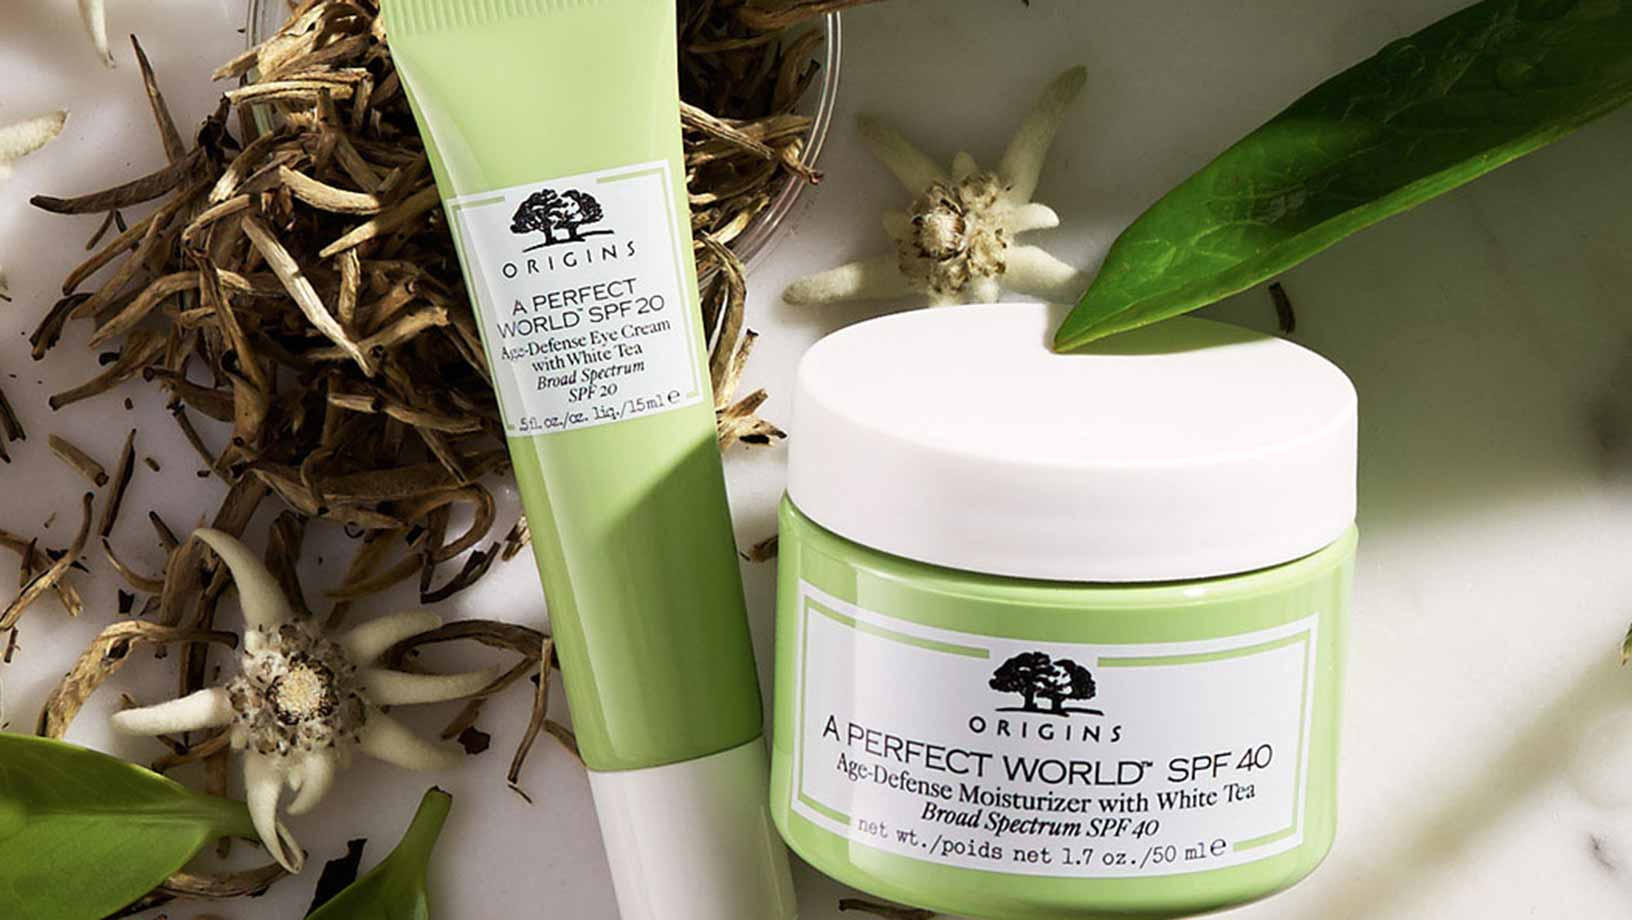 Origins oil-free SPF 40 moisturizer and Eye Cream on a marbel counter with dried white tea and green leafs in the background